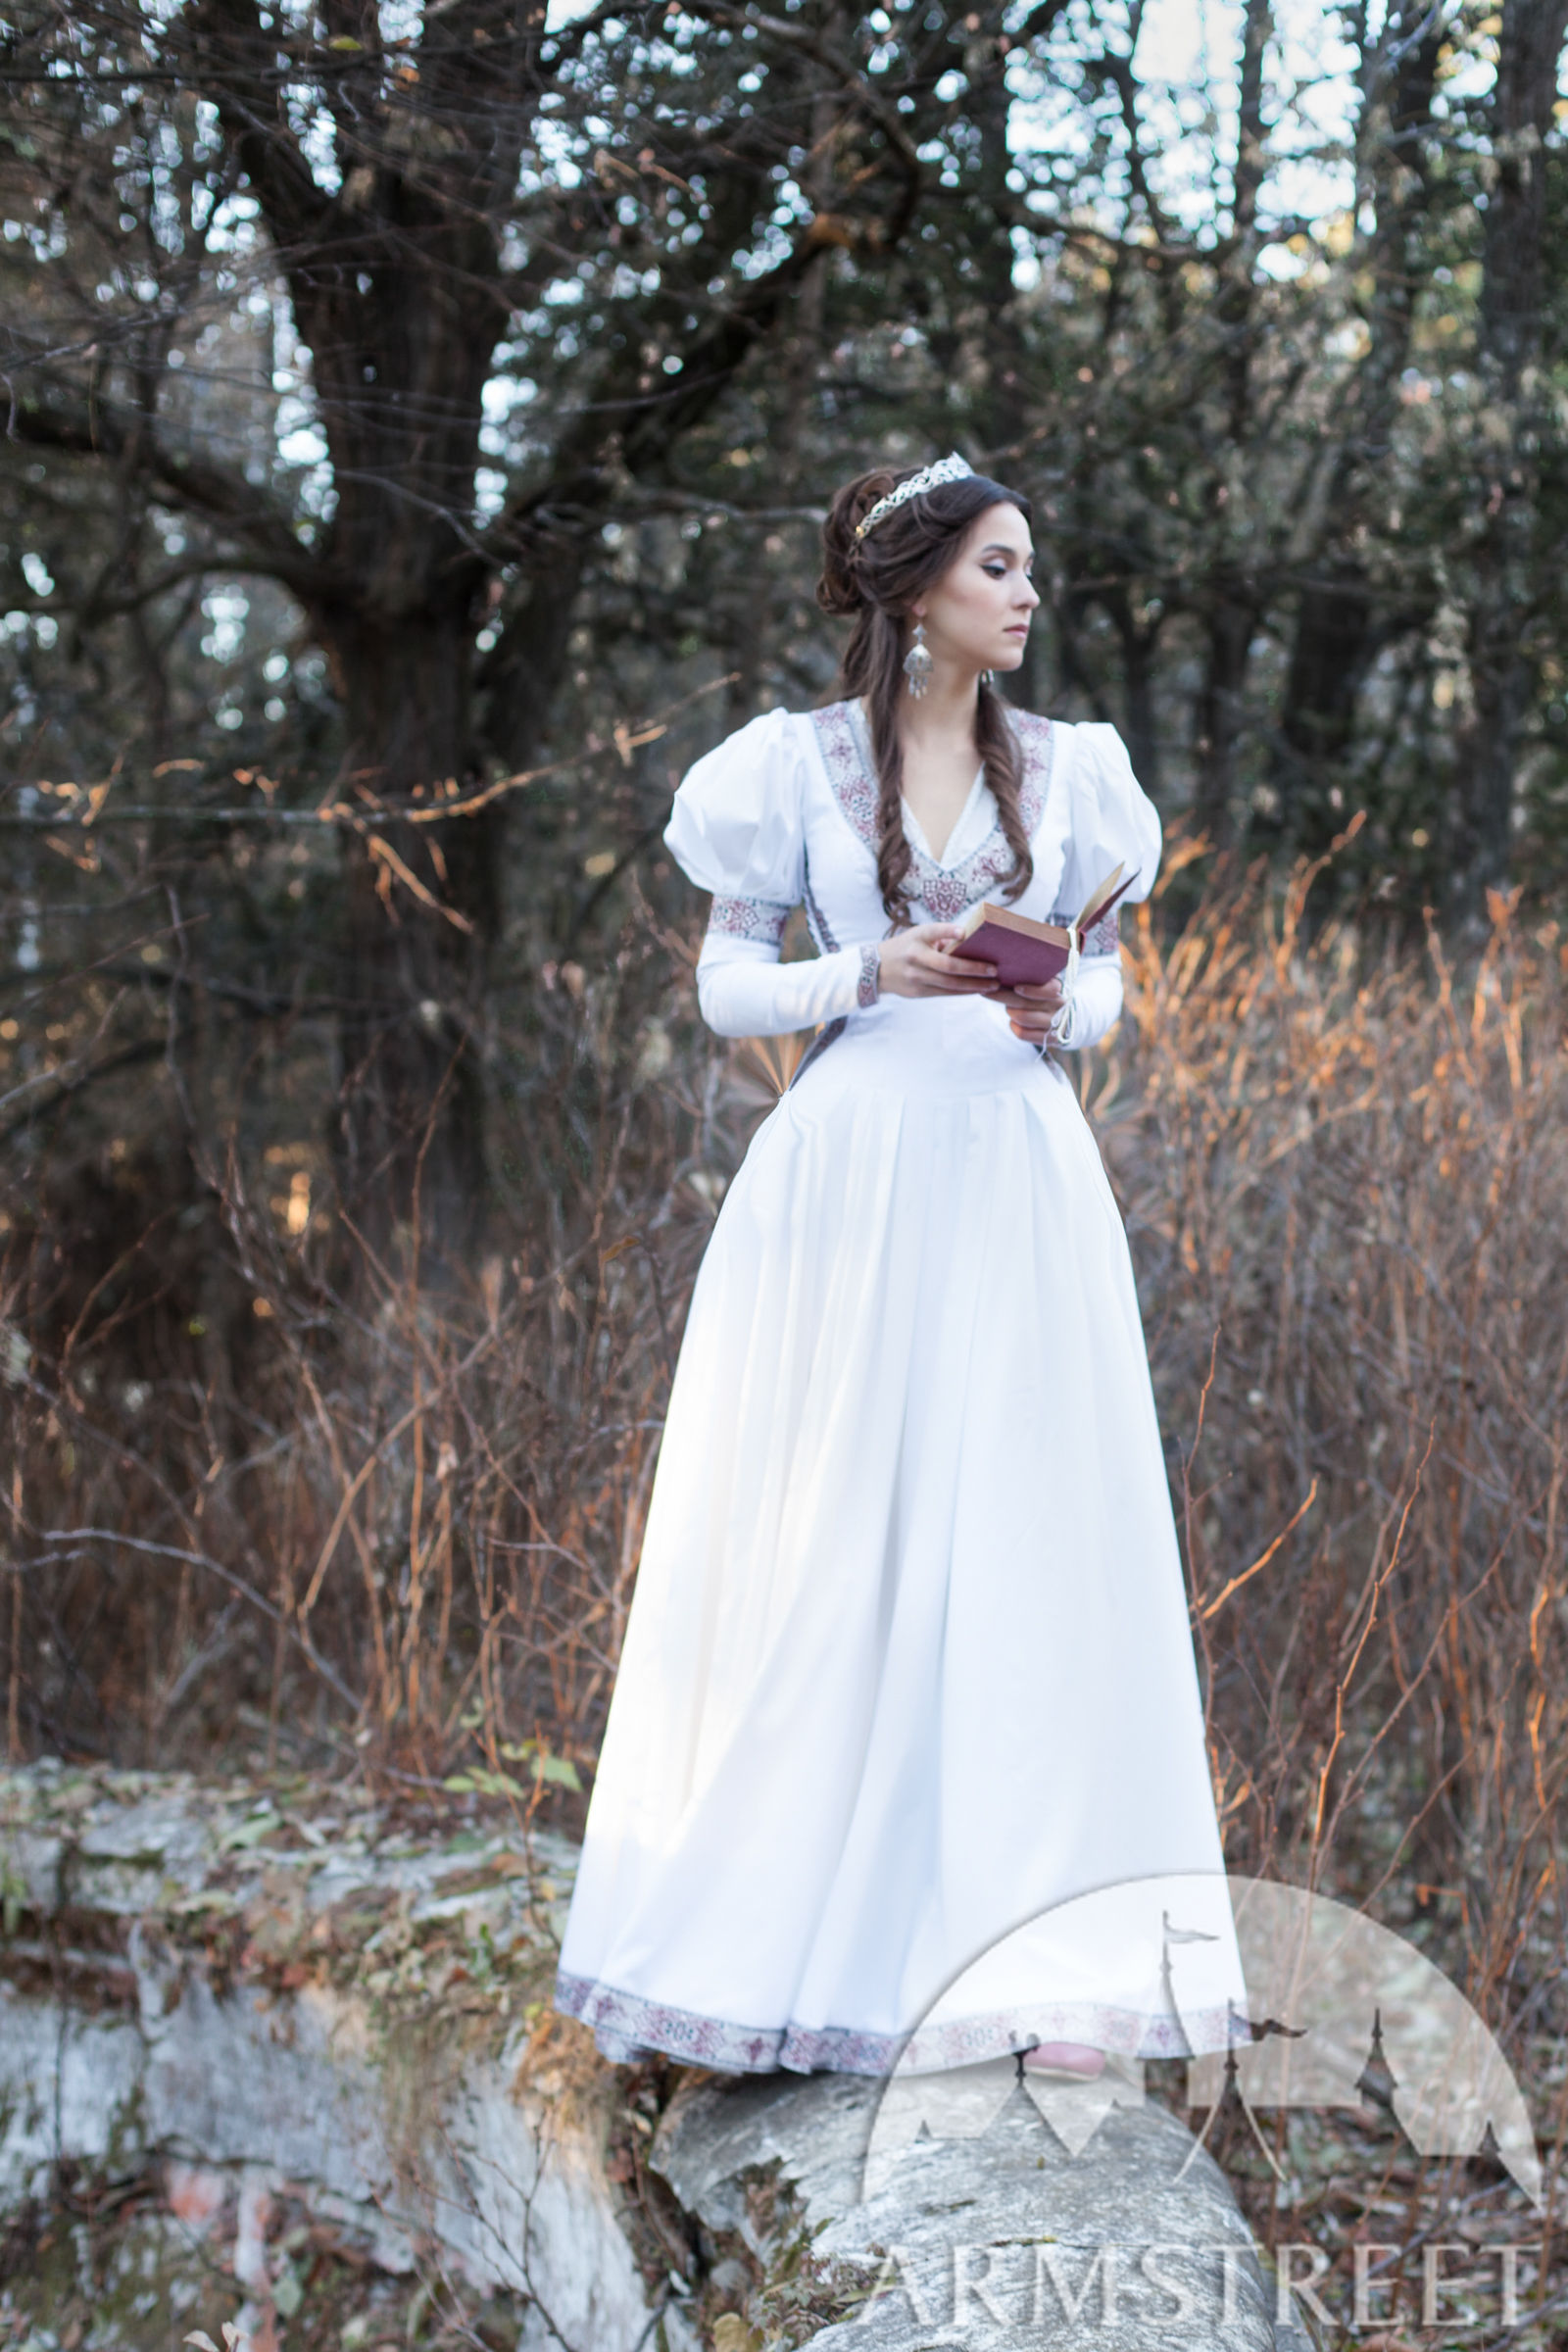 Found Princess Dress for period and medieval events